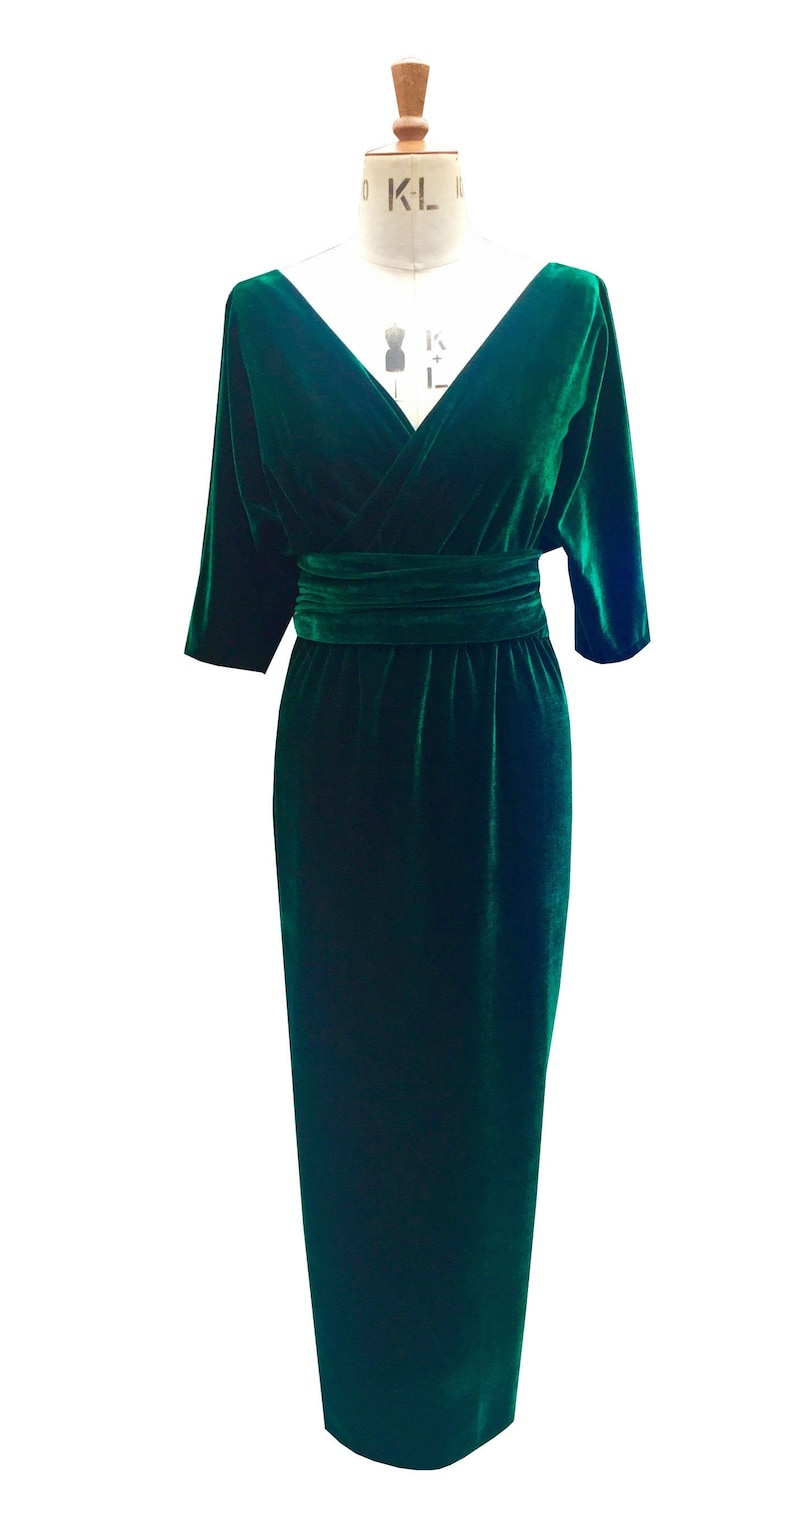 1960s Cocktail, Party, Prom, Evening Dresses Baylis and Knight Green Velvet Wrap Dress elegant cocktail pinup Event $107.86 AT vintagedancer.com